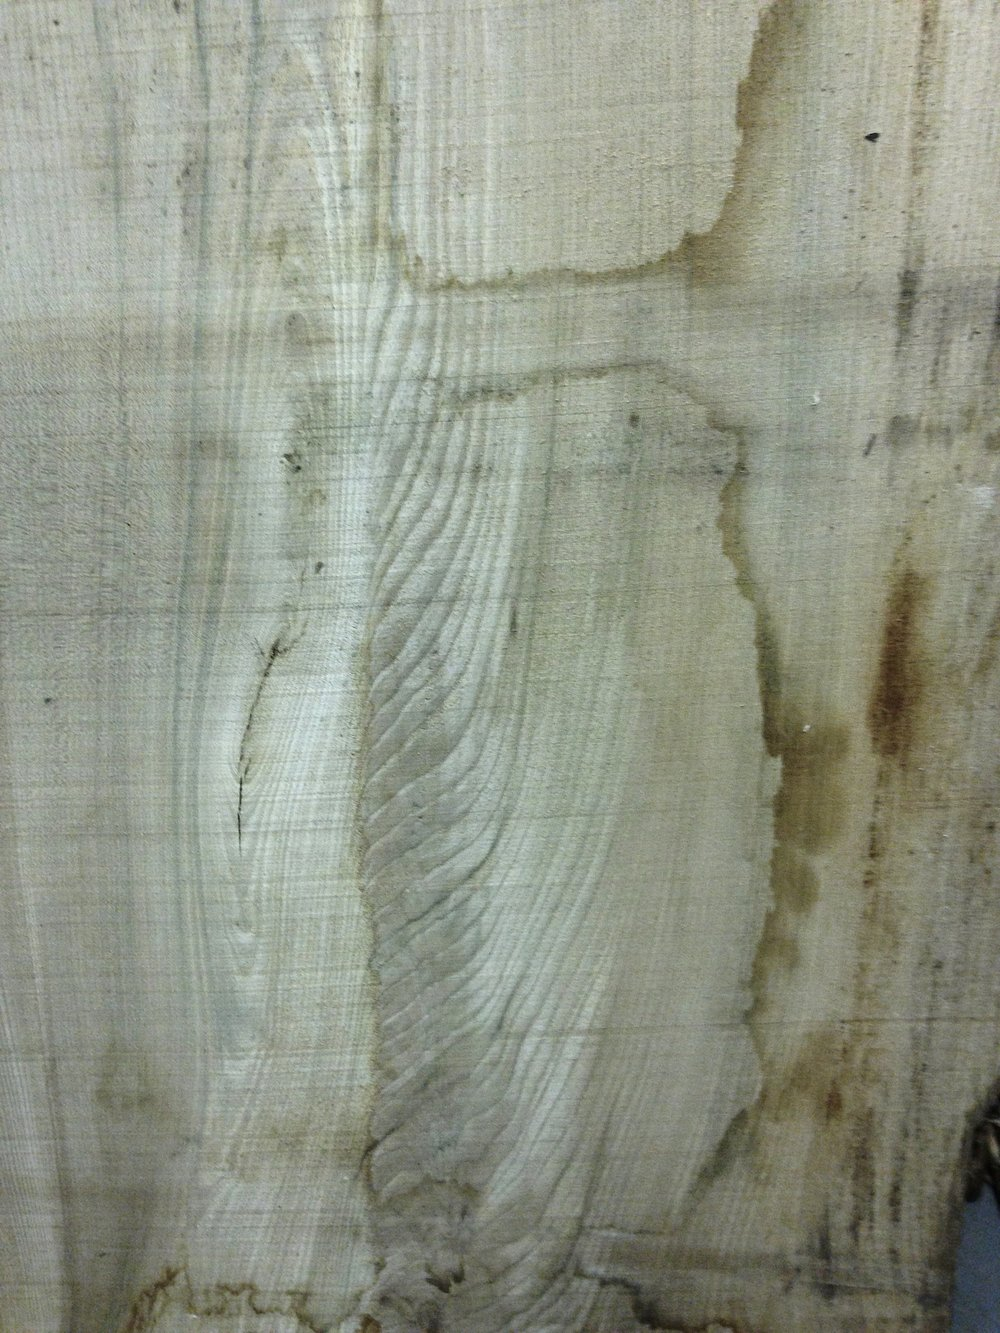 Elm: wild flame pattern, the top..perhaps?